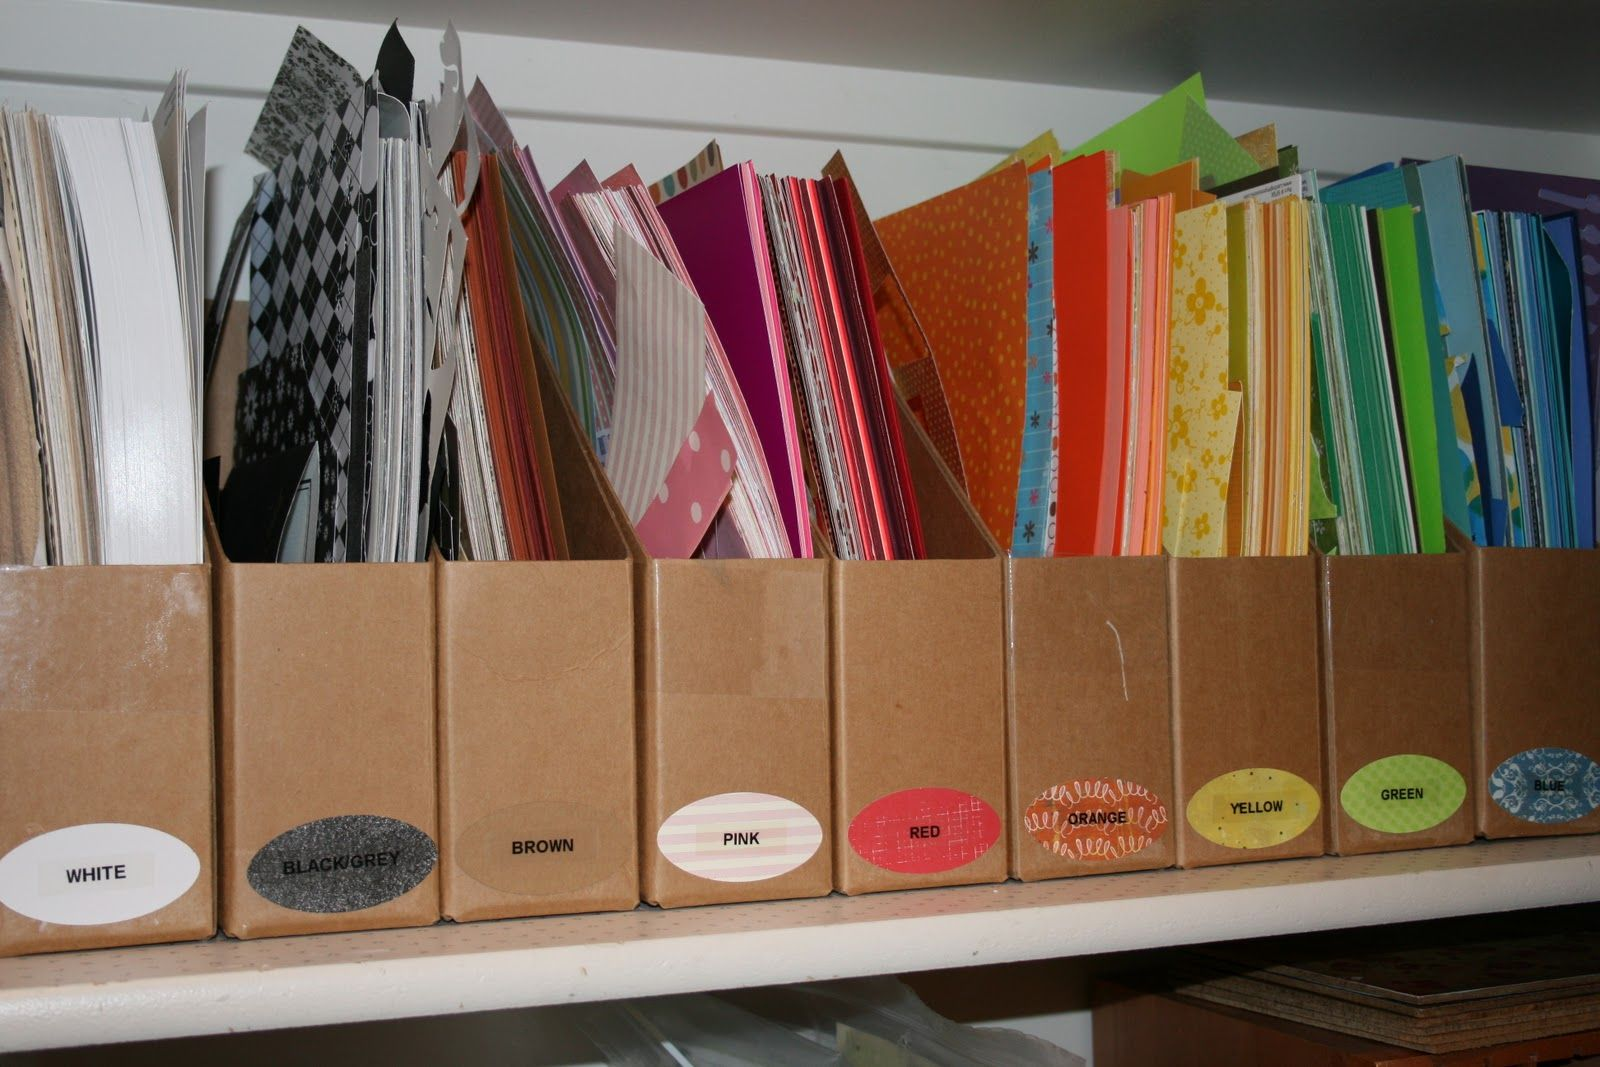 paper scraps how to organize